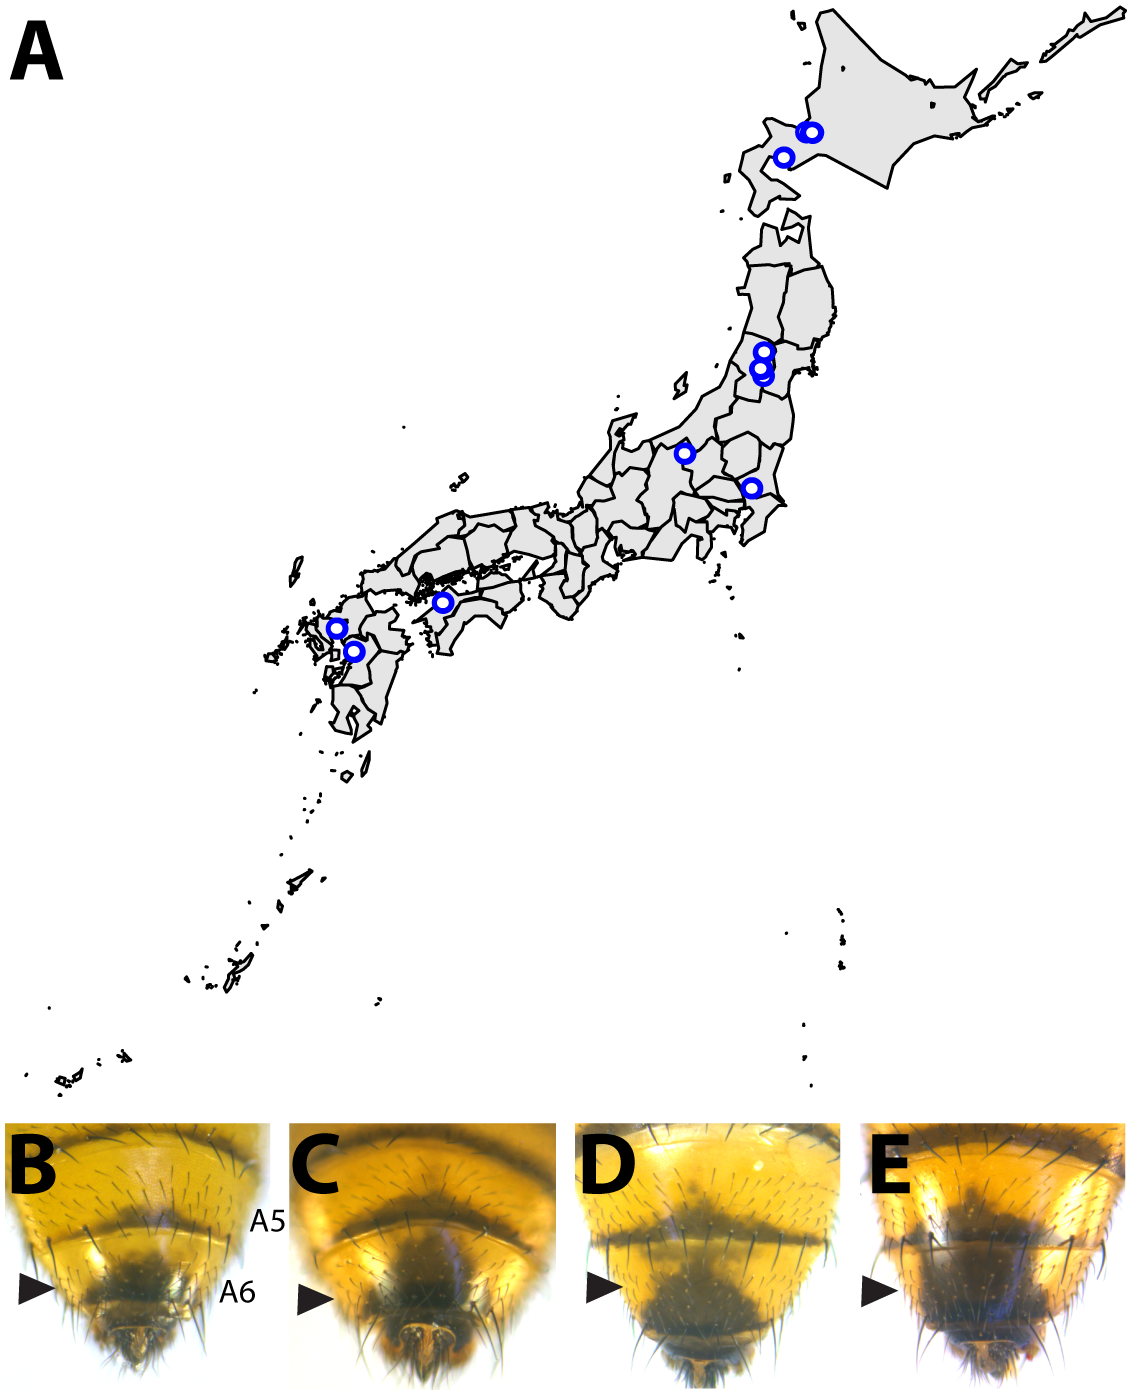 Intraspecific variation in abdominal pigmentation of <i>D</i>. <i>auraria</i> across Japan.